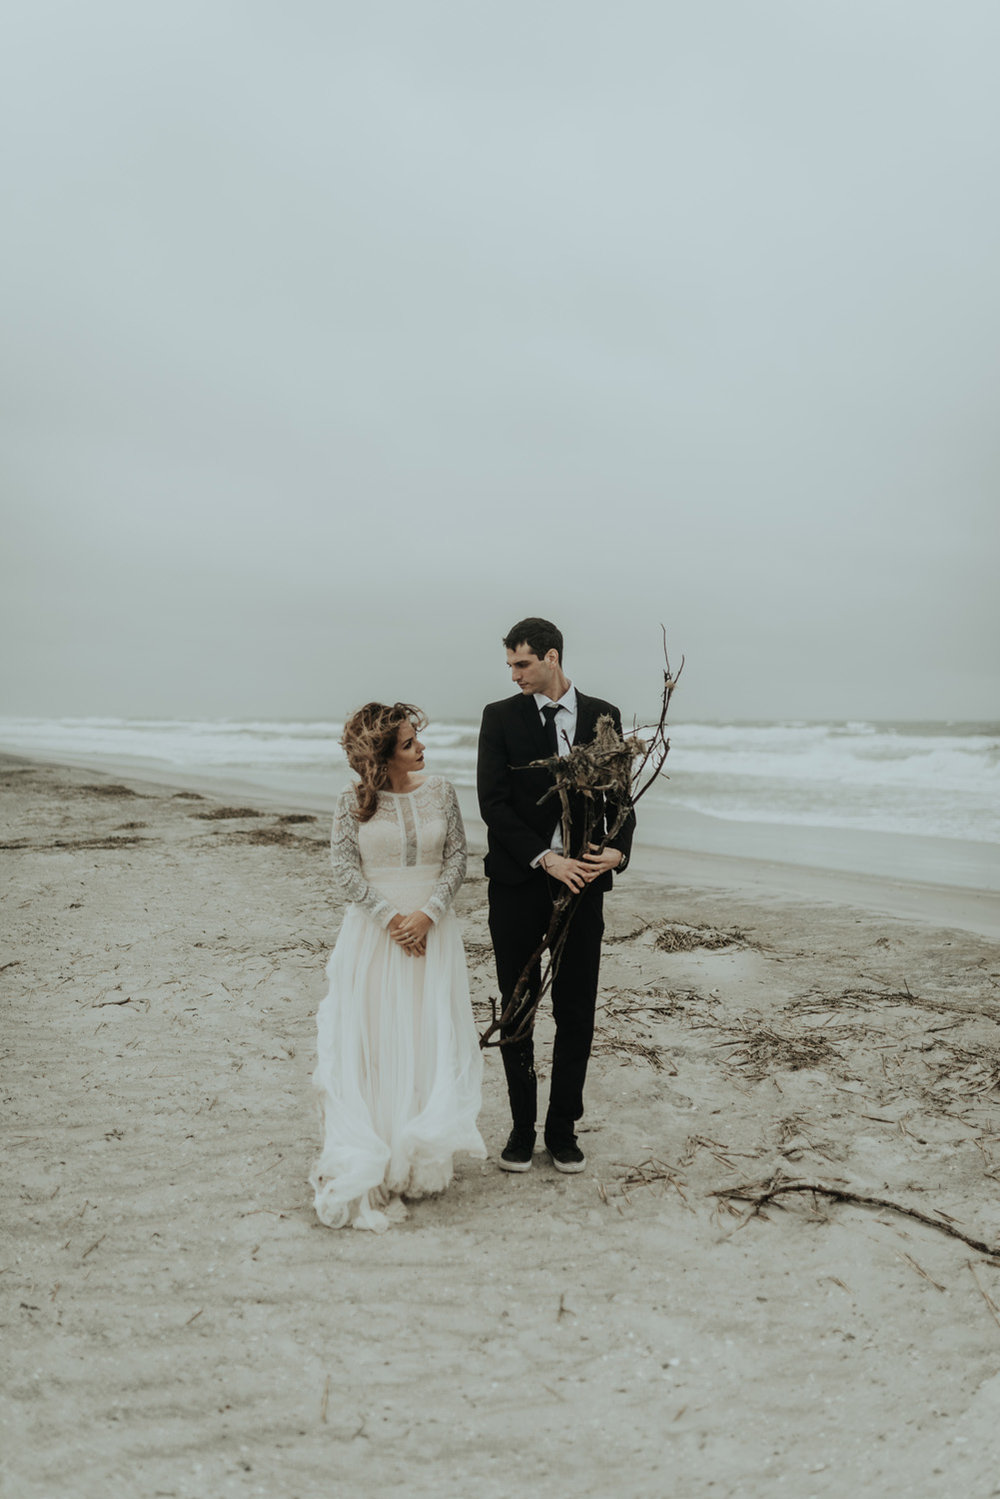 kylewillisphoto_kyle_Willis_Photography_liz_gibbs_brigantine_beach_atlantic_city_wedding_philadelphia_jersey_shore_new_nyc_engagement_delaware_engaged_married_rainy_photos_ac_boho24.jpg